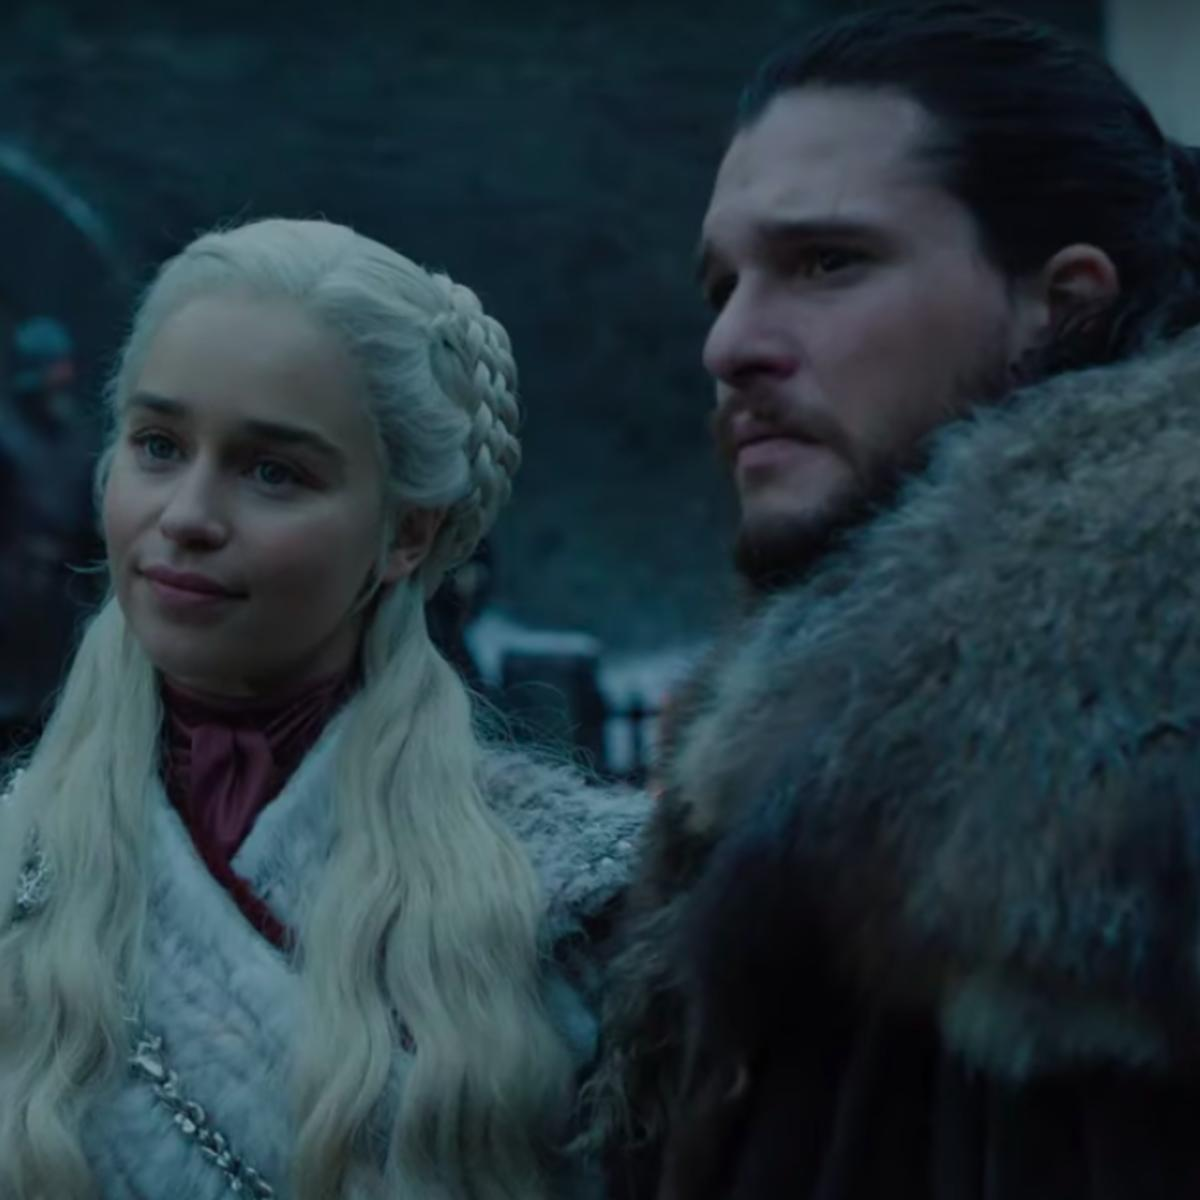 'Game of Thrones' Season 8 Footage Teases New Alliance